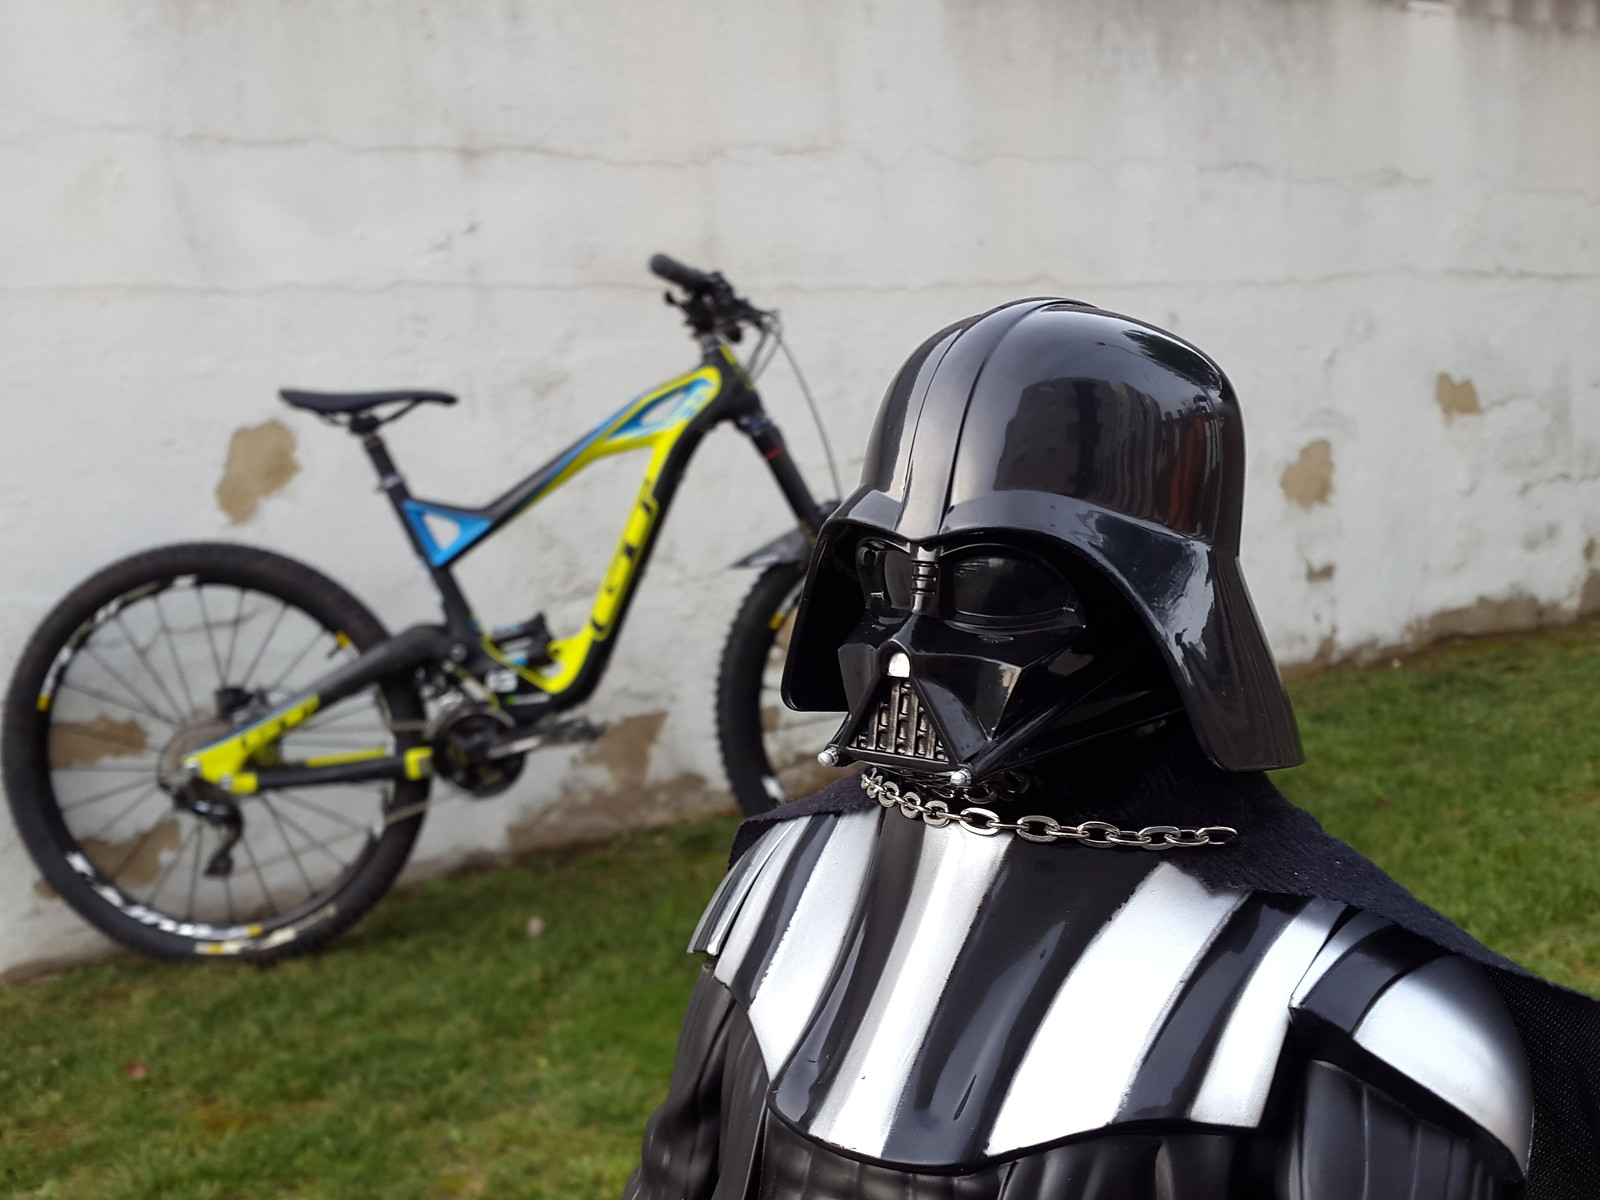 Welcome to the Dark Side of the Force!